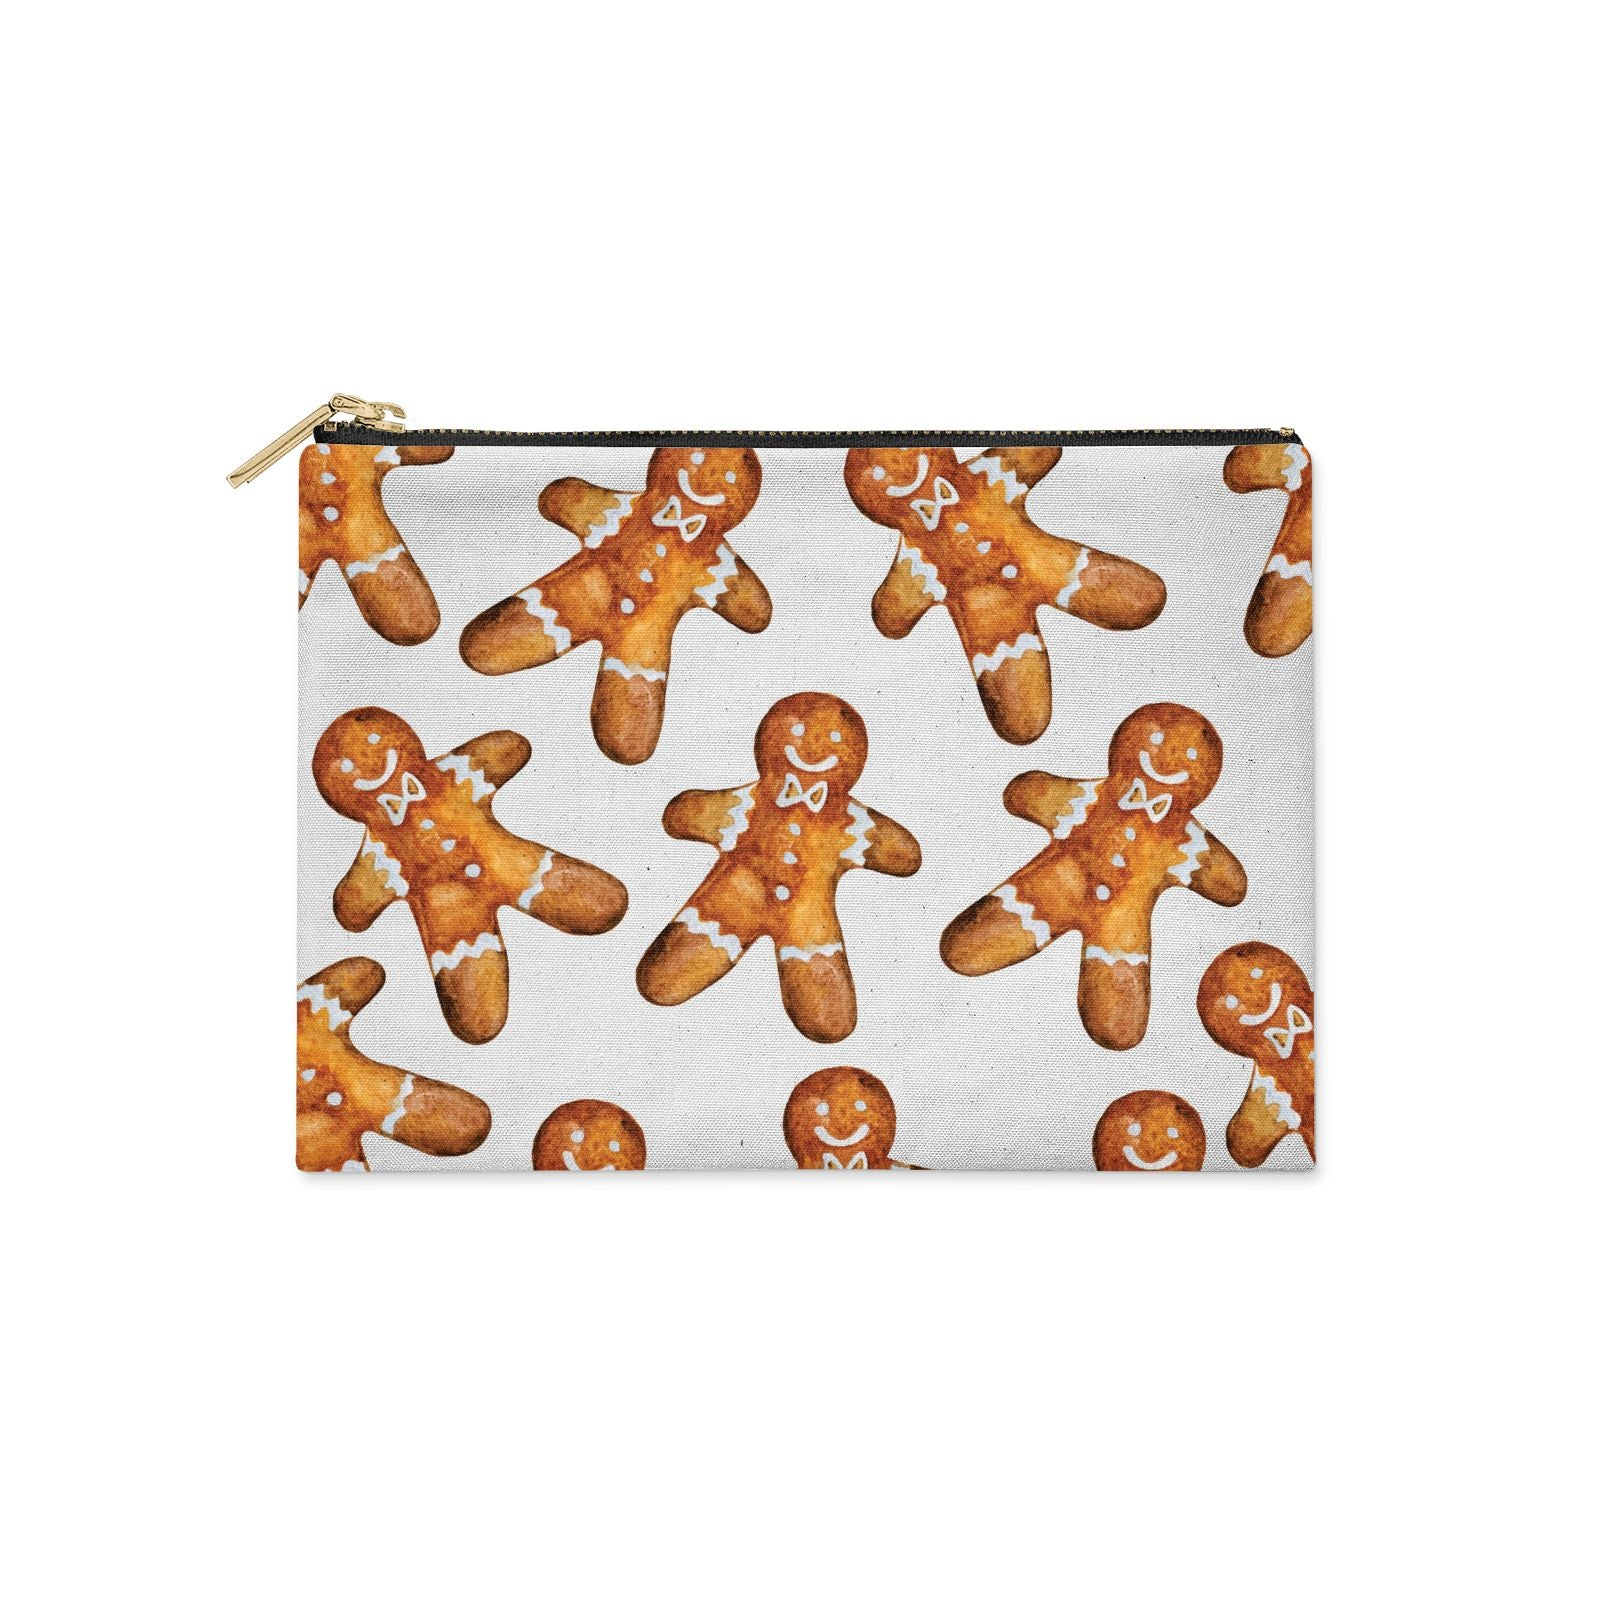 Christmas Gingerbread Man Clutch Bag Zipper Pouch